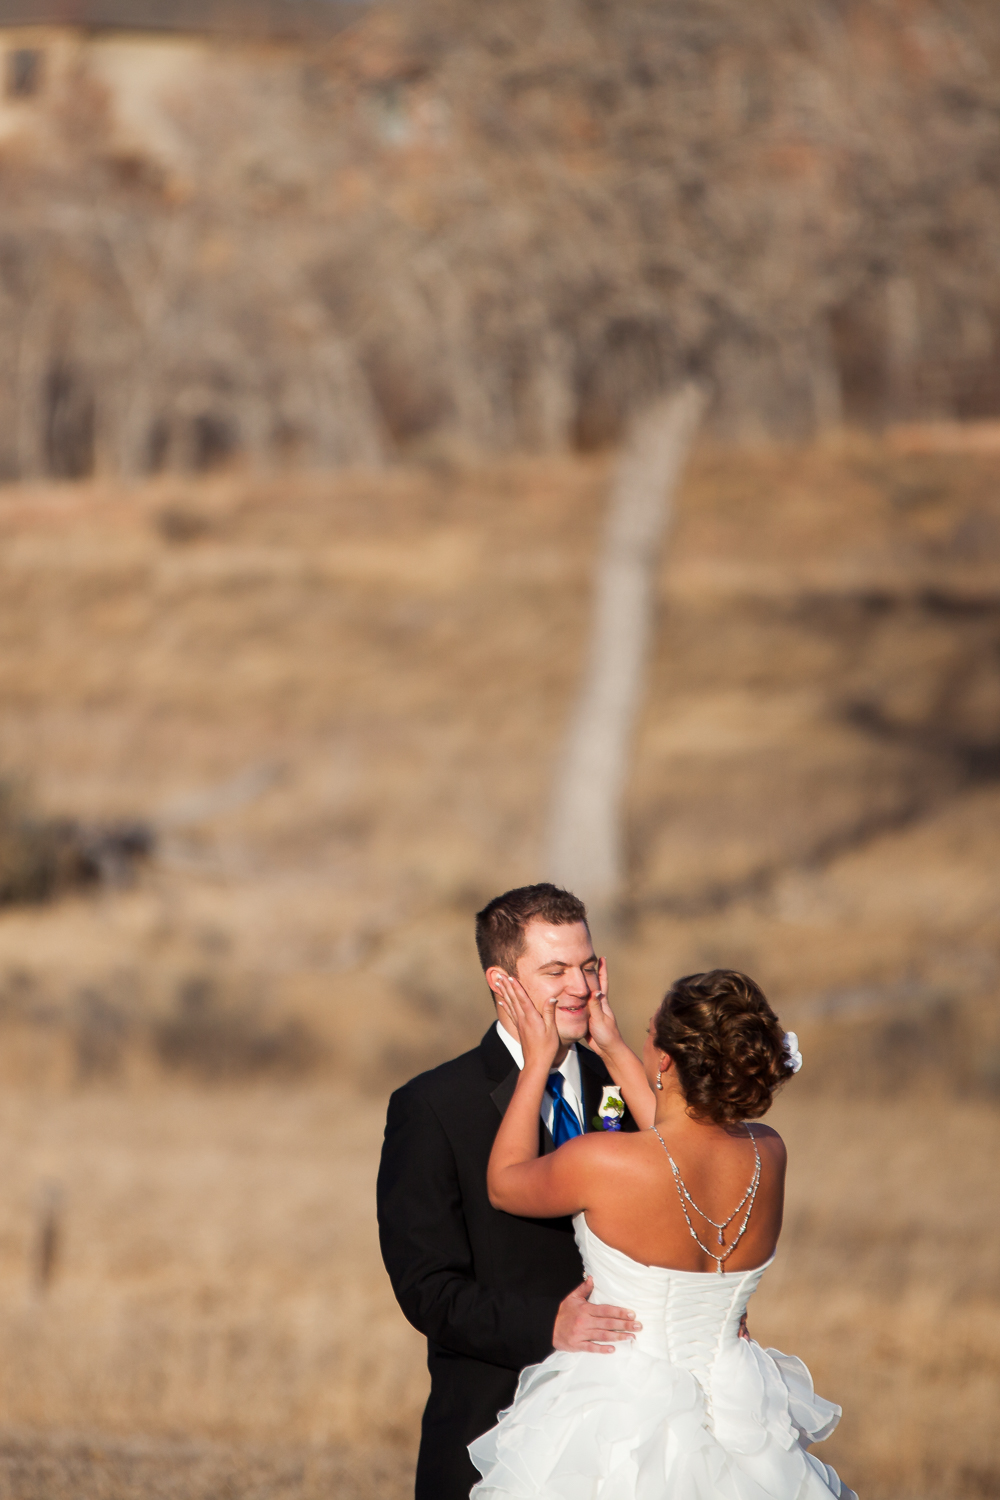 Colorado-Wedding-Photography-33.jpg